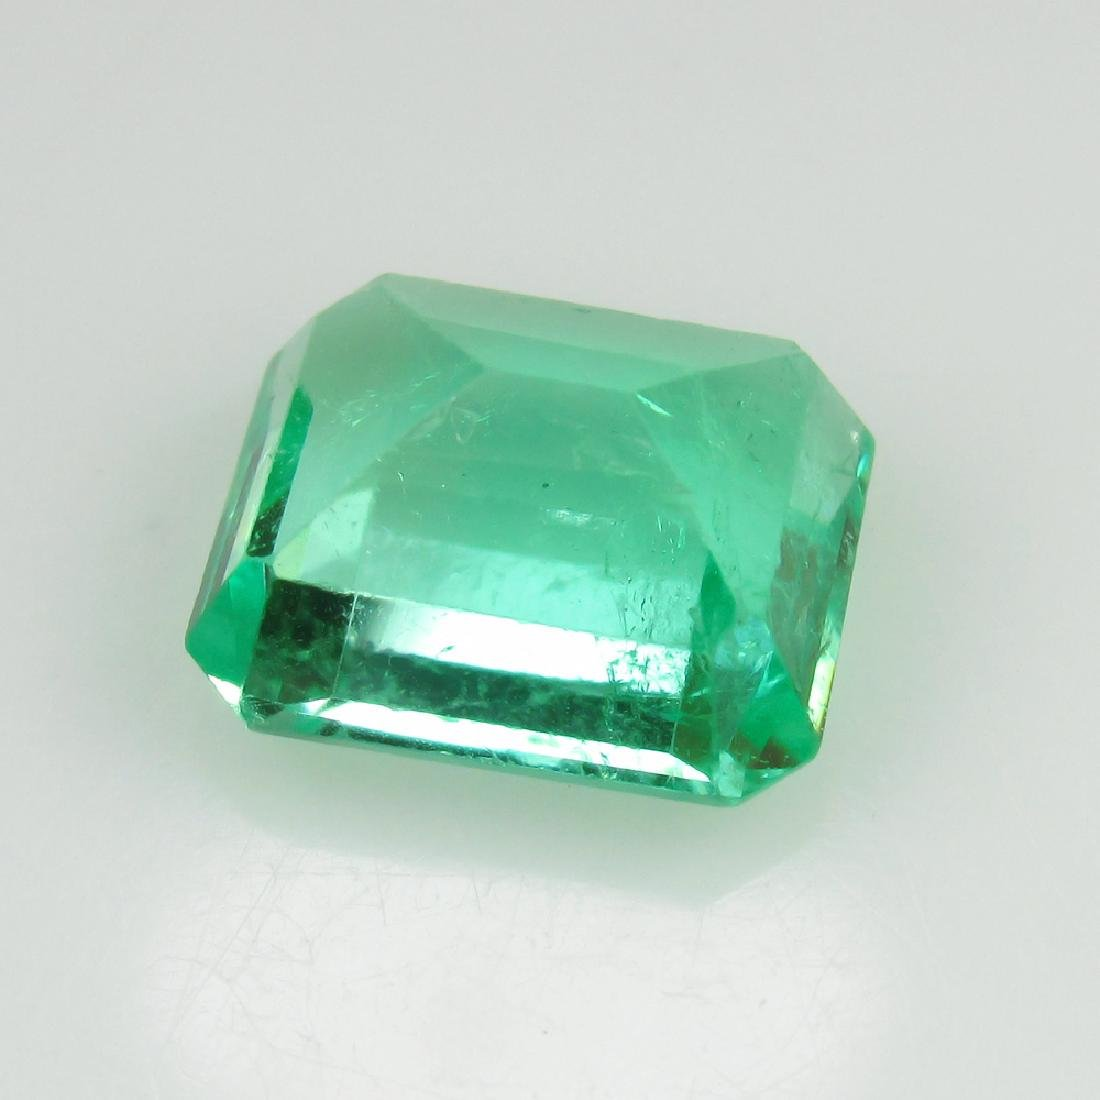 2.20 Ctw GRS Certified Natural Colombian Emerald - 6